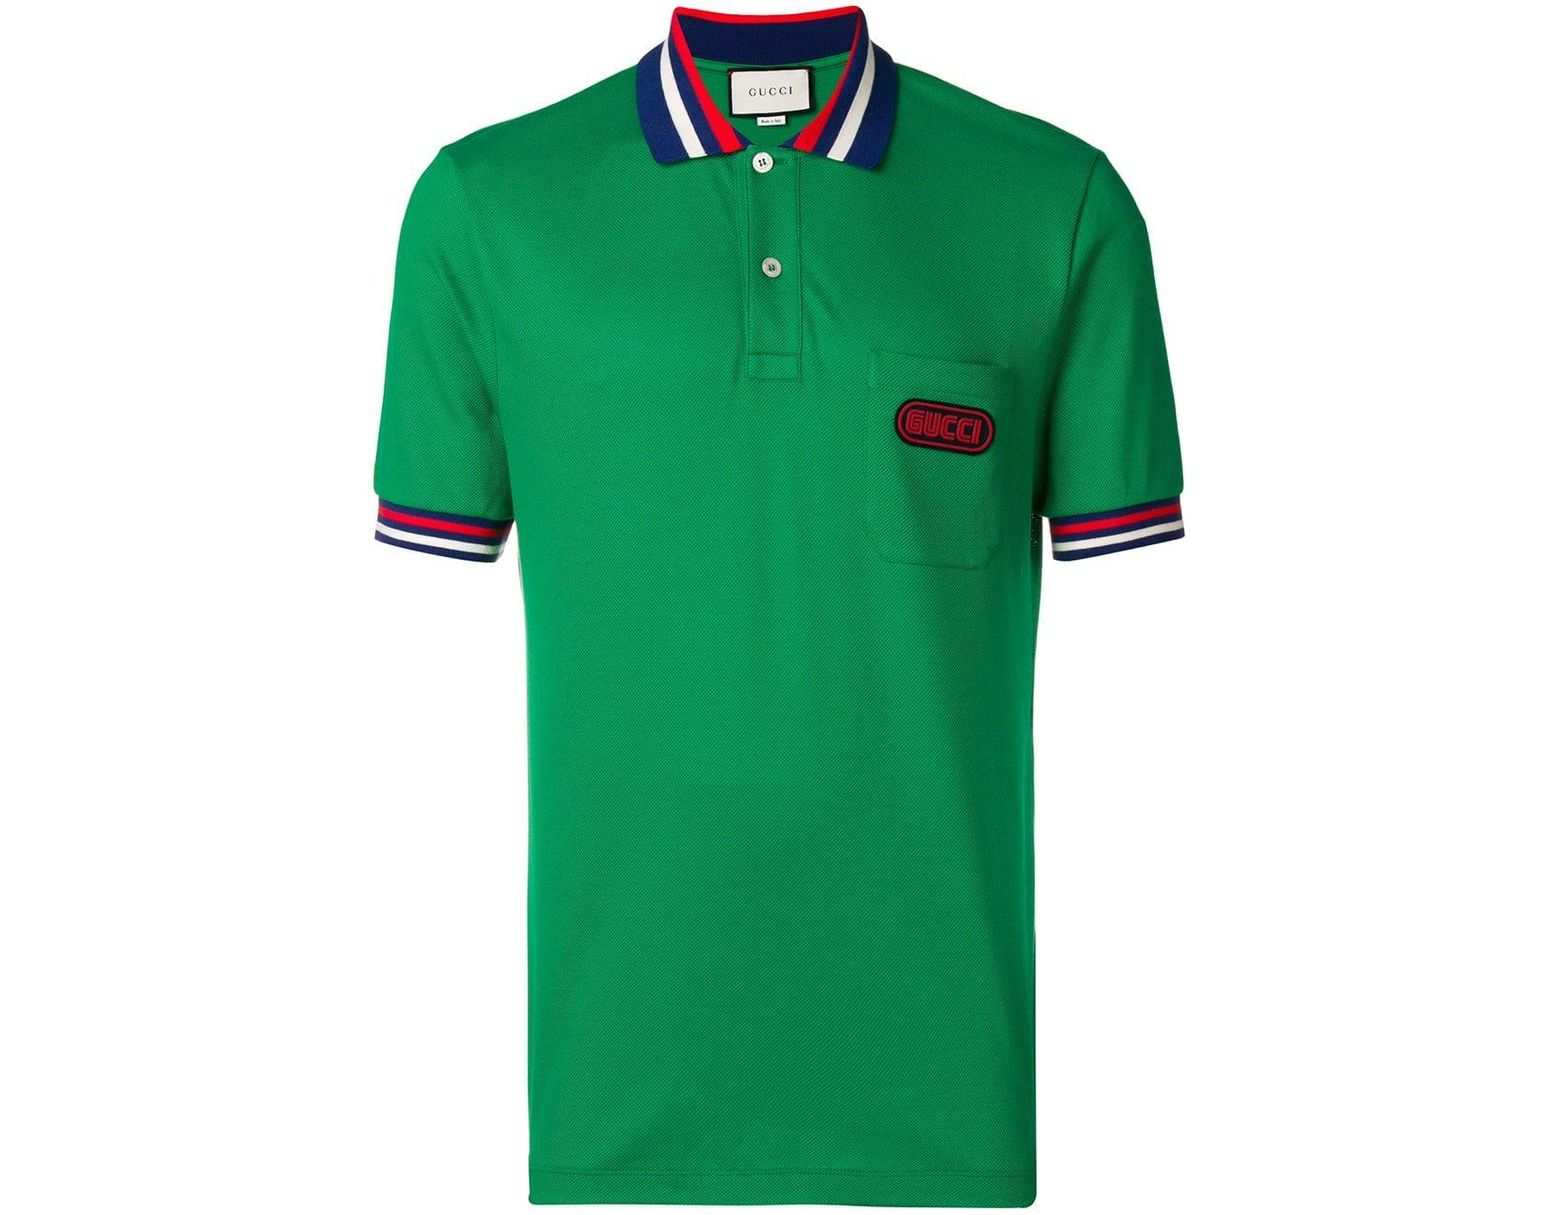 d39483d048f9 Gucci Logo Patch Polo Shirt in Green for Men - Lyst